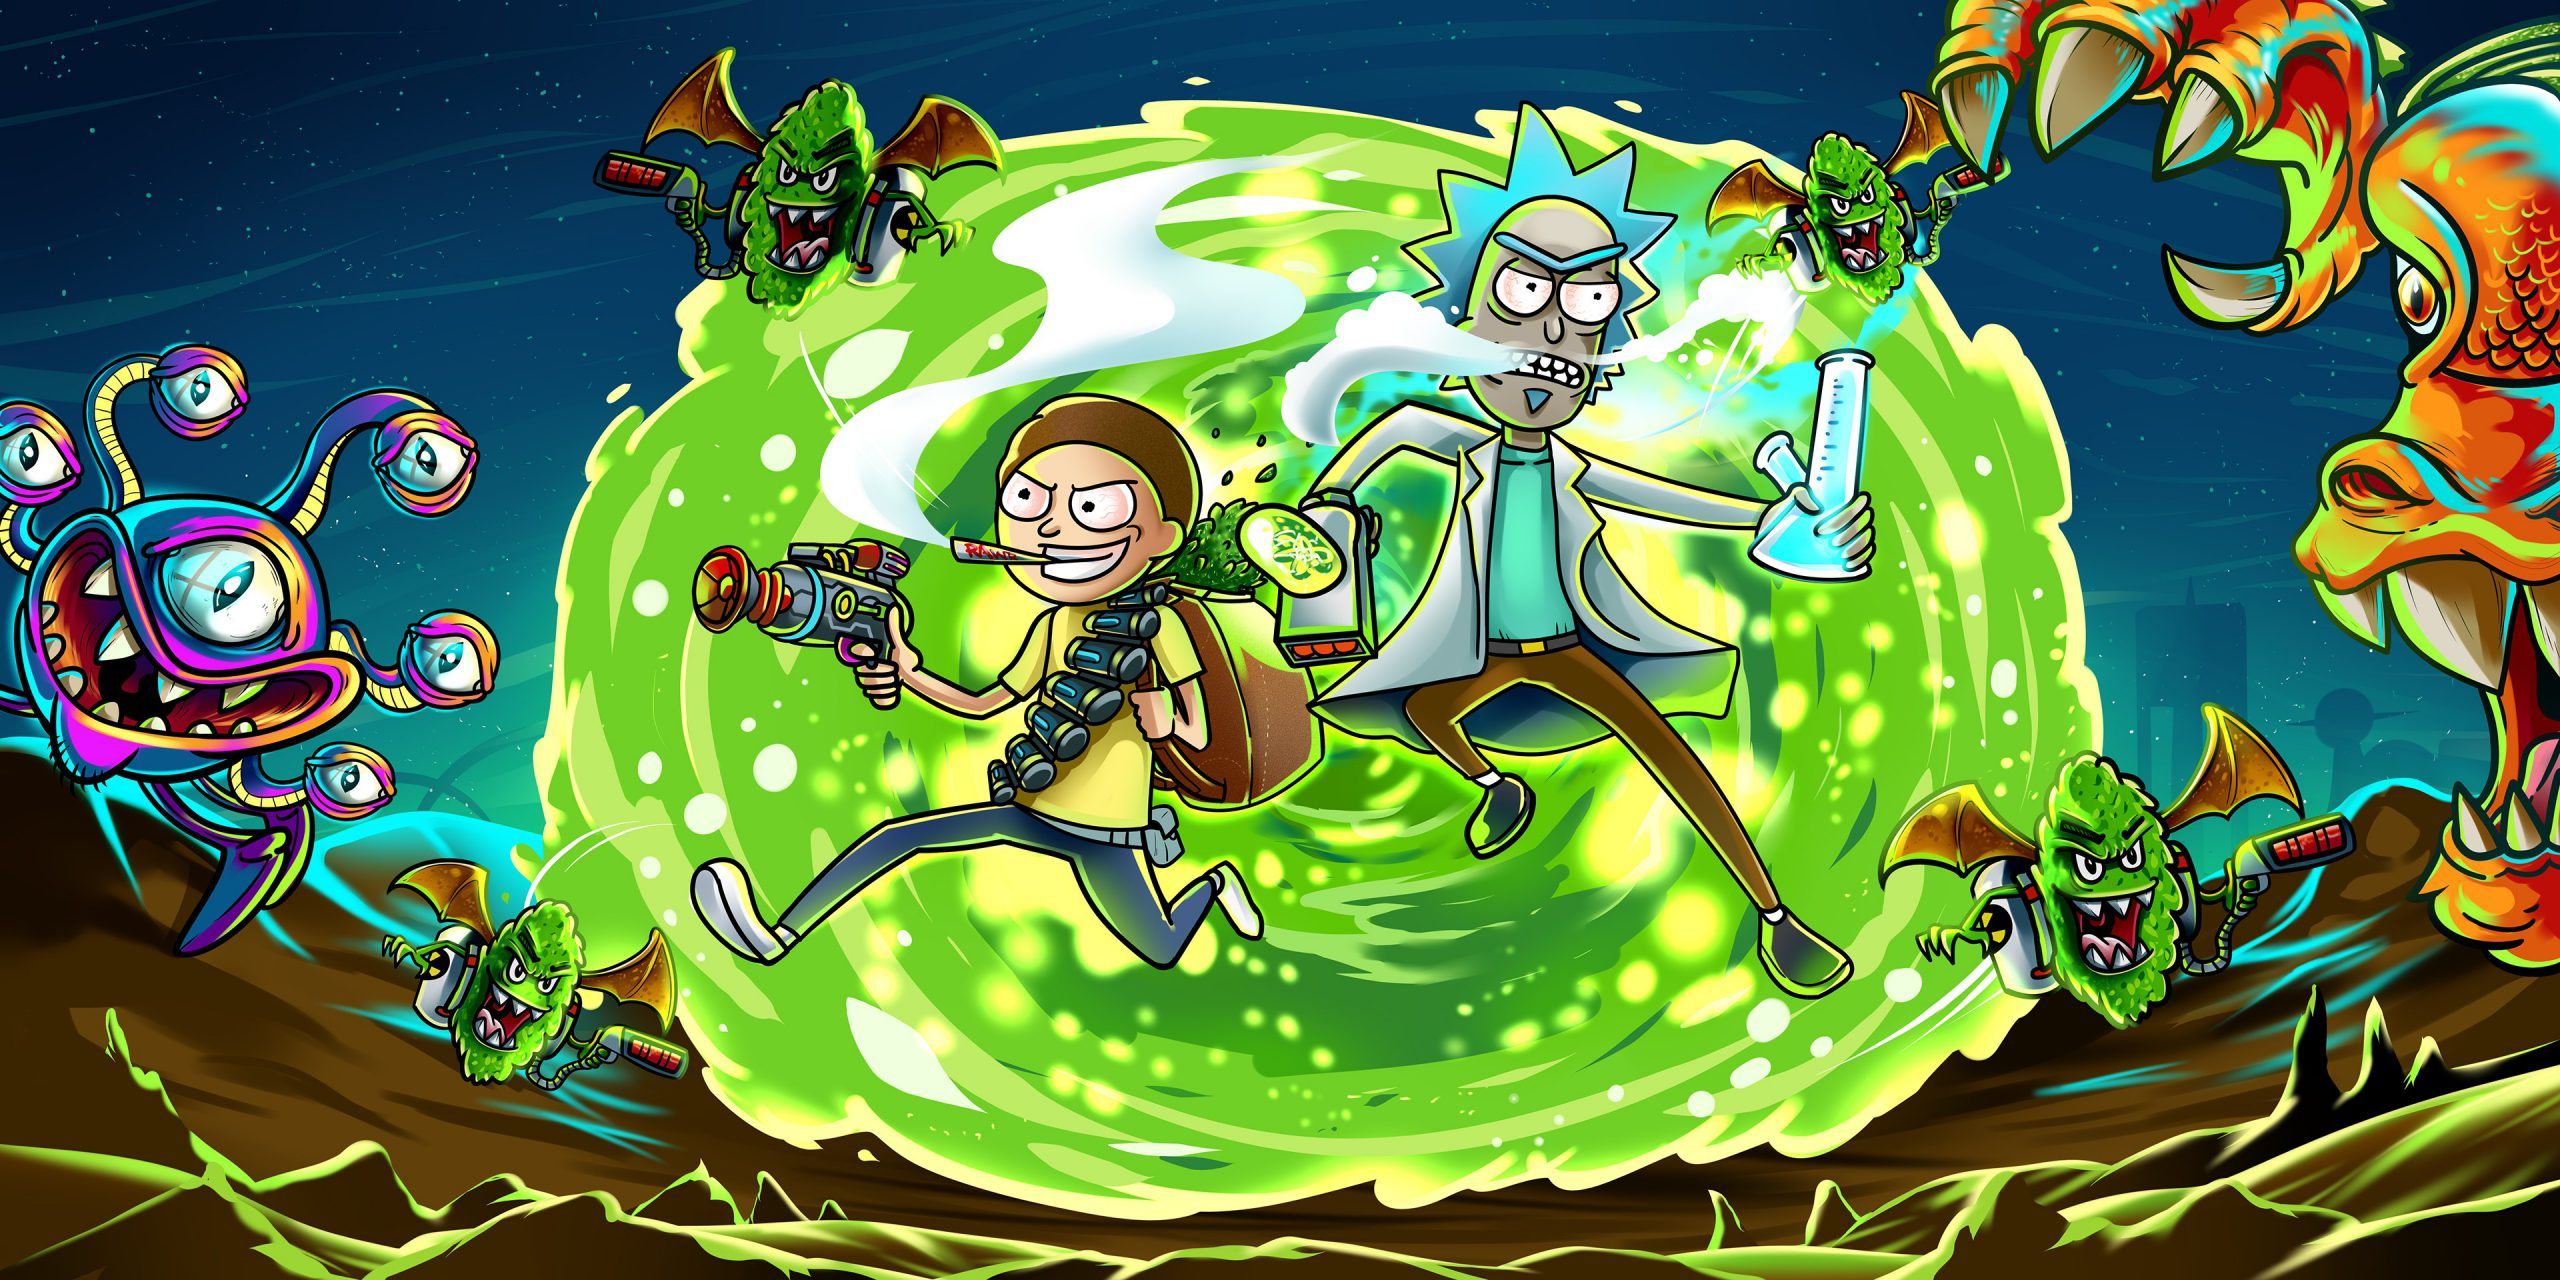 Rick and Morty 4K Wallpaper - KoLPaPer - Awesome Free HD Wallpapers